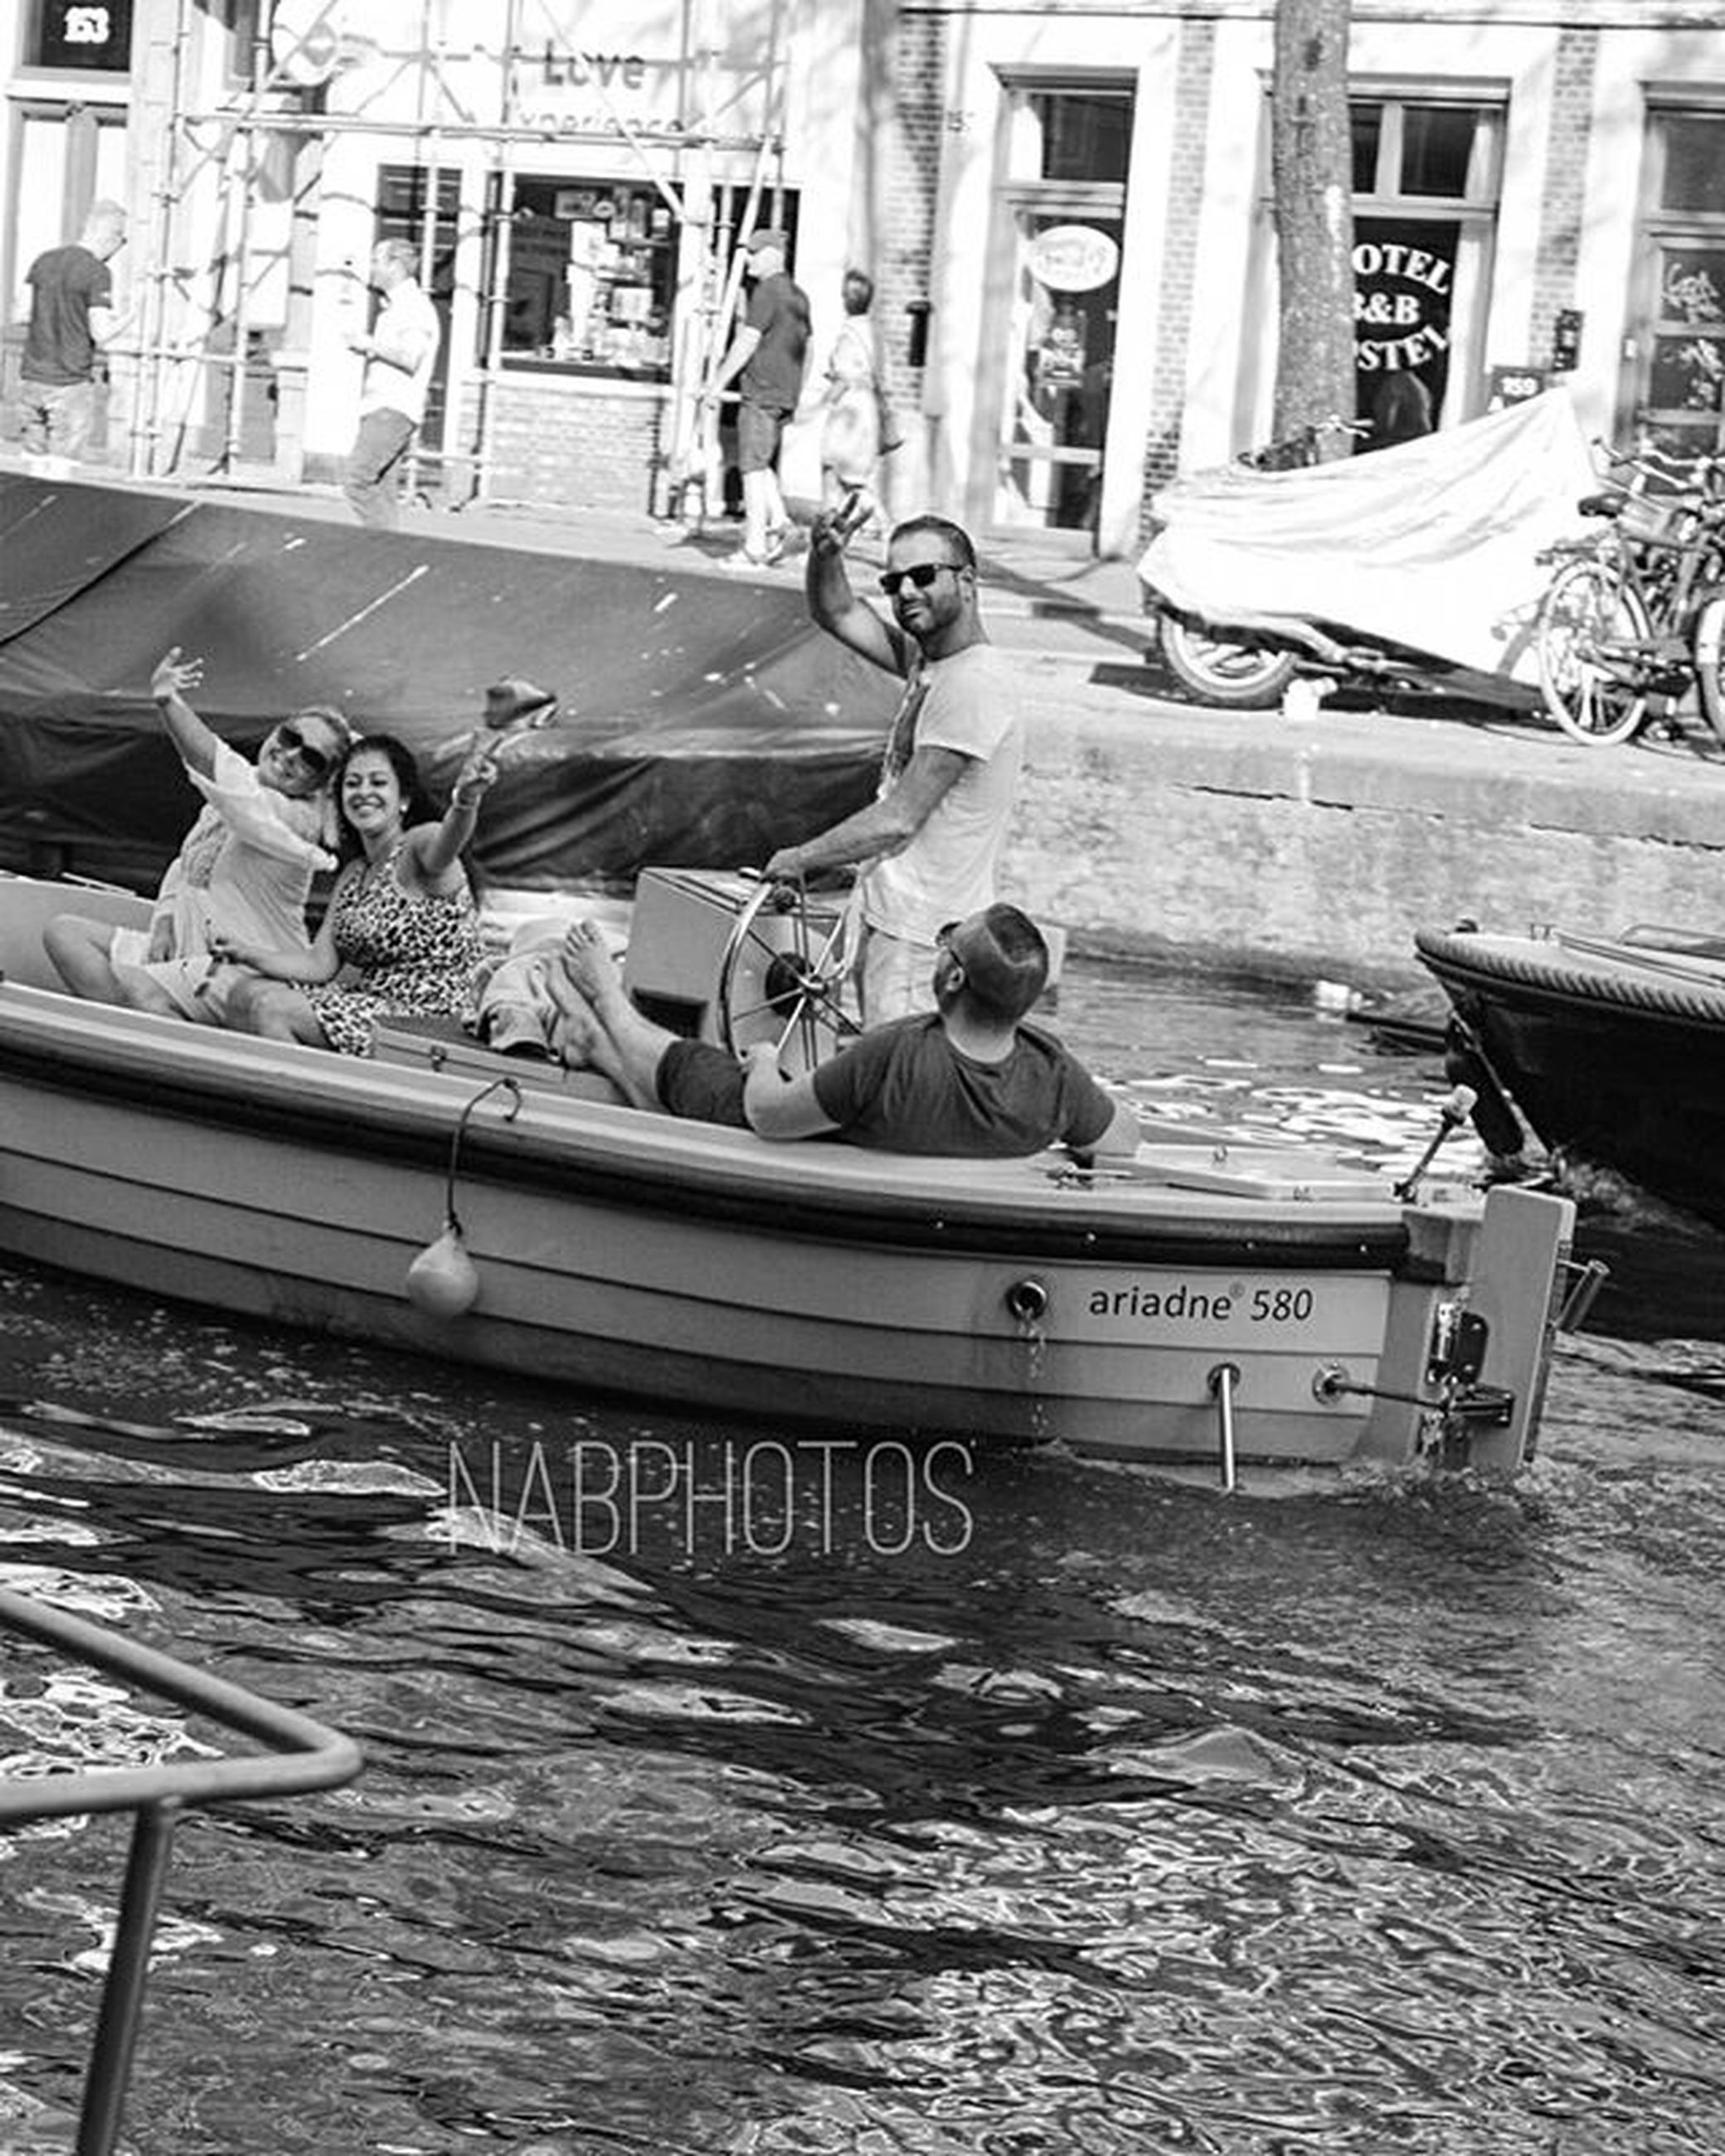 built structure, building exterior, architecture, water, transportation, nautical vessel, boat, day, high angle view, moored, outdoors, incidental people, mode of transport, large group of objects, canal, sunlight, house, chair